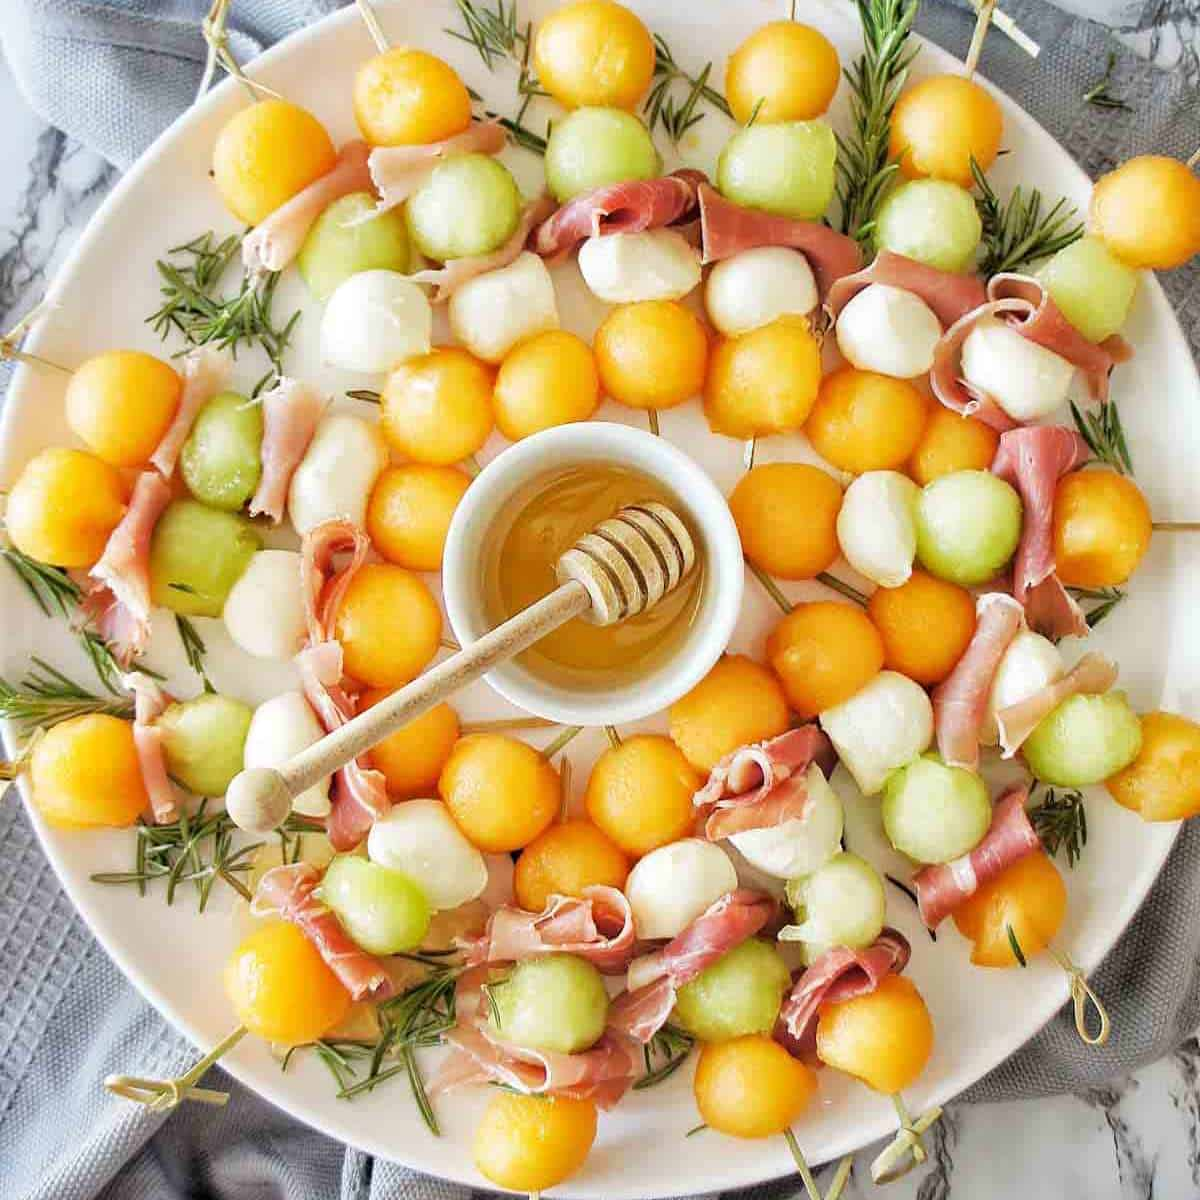 Melon and Proscuitto skewers on platter with small white bowl of honey in the middle